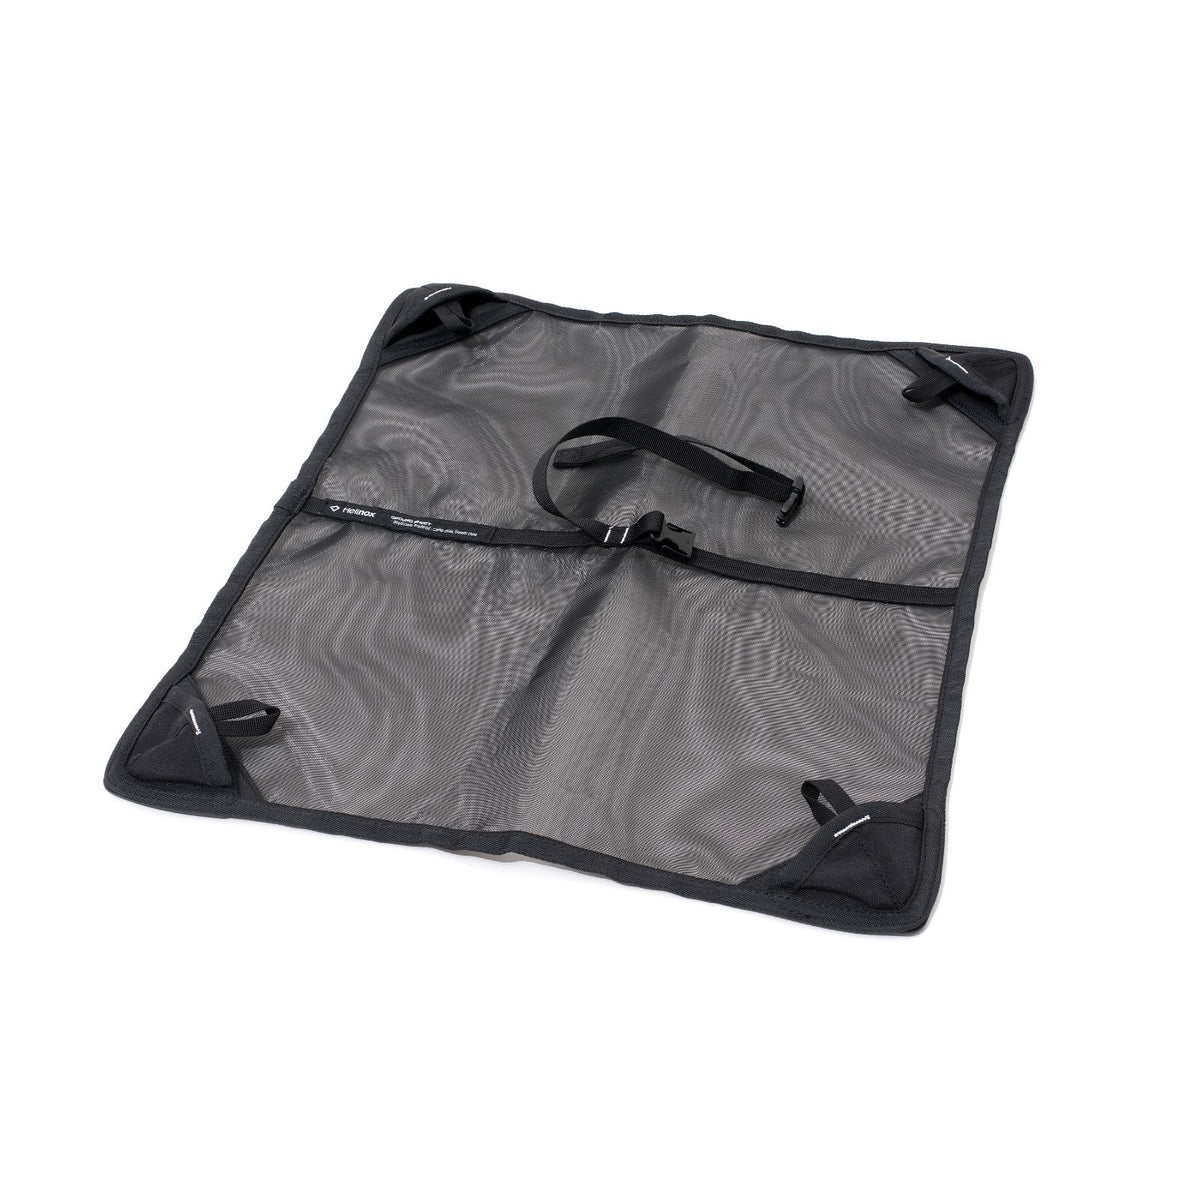 Helinox Ground Sheet for Sunset Chair